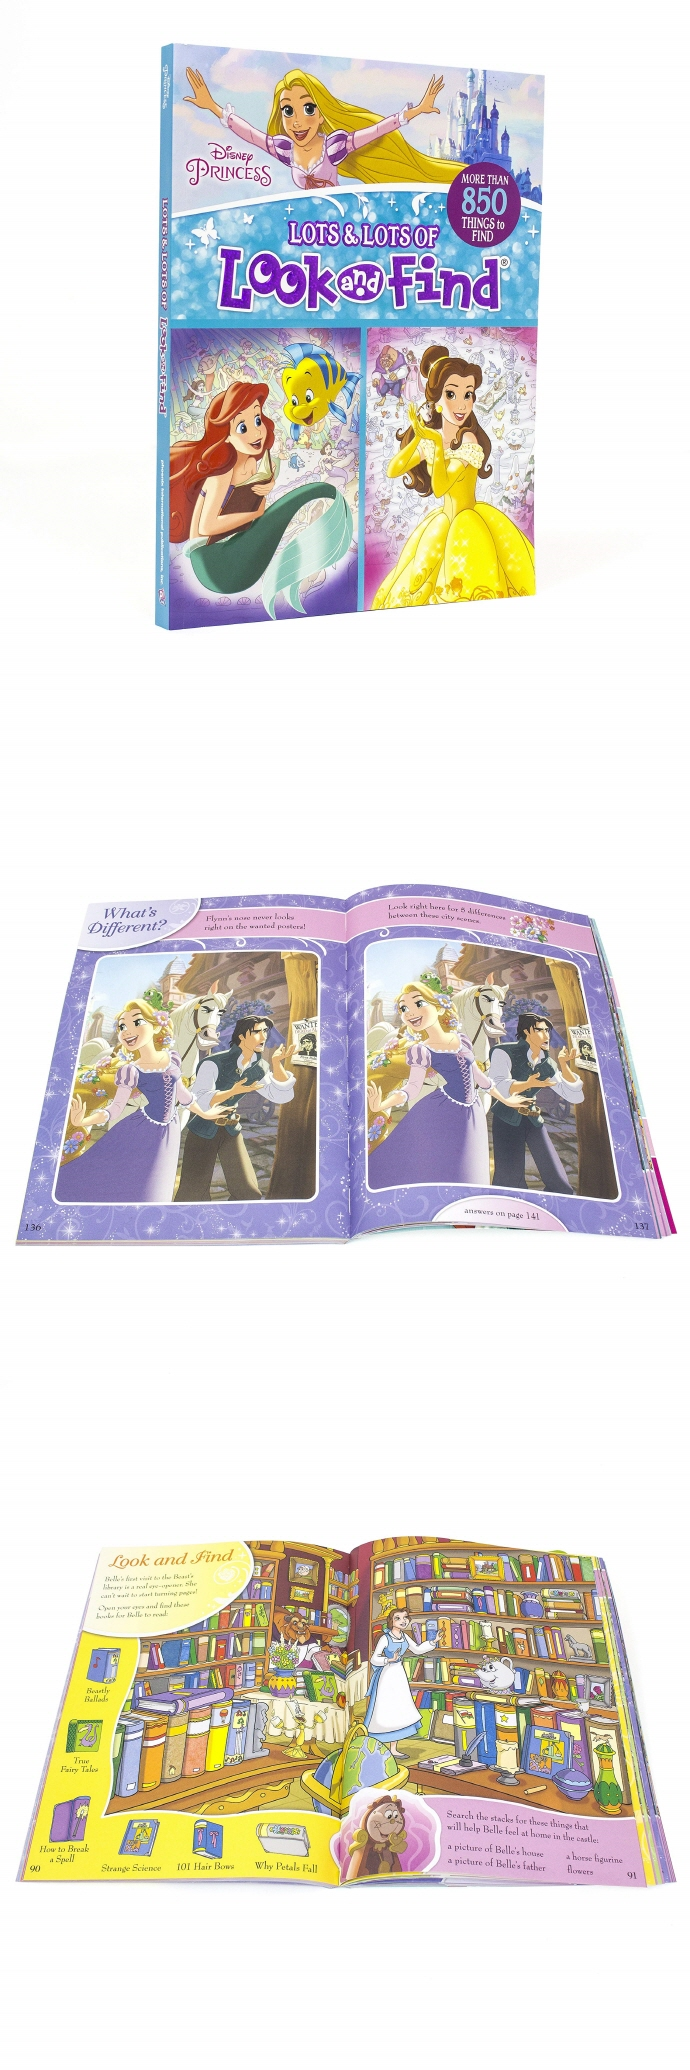 Disney Princess - Lots and Lots of Look and Find Activity Book 도서 상세이미지